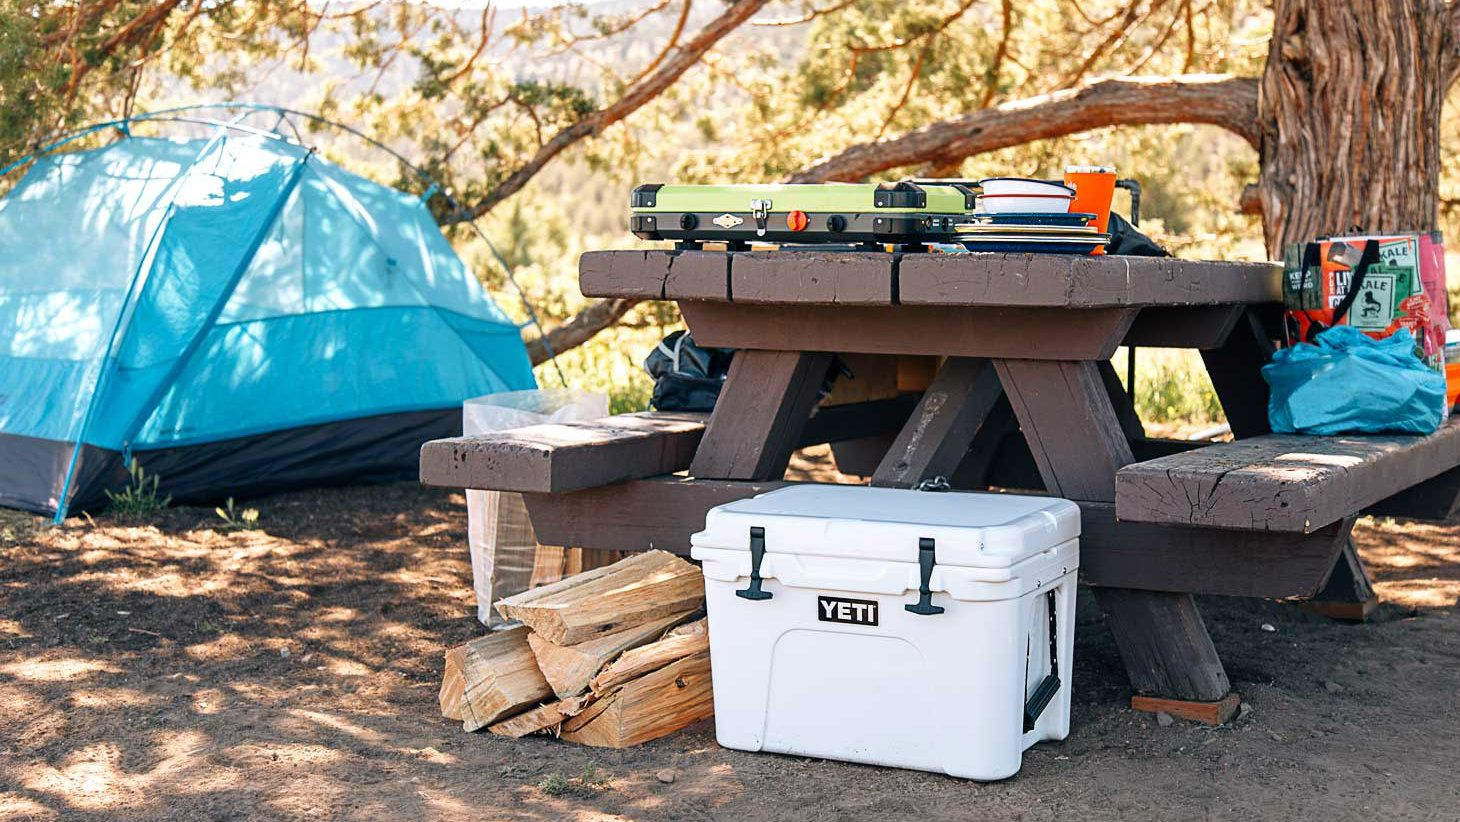 Camping Cooler Market Volume, Product Type, Material, Application, Forecast 2026: by Key Players like Bison Coolers, orca, Pelican Products, Inc., The Coleman Company, Inc., YETI Coolers